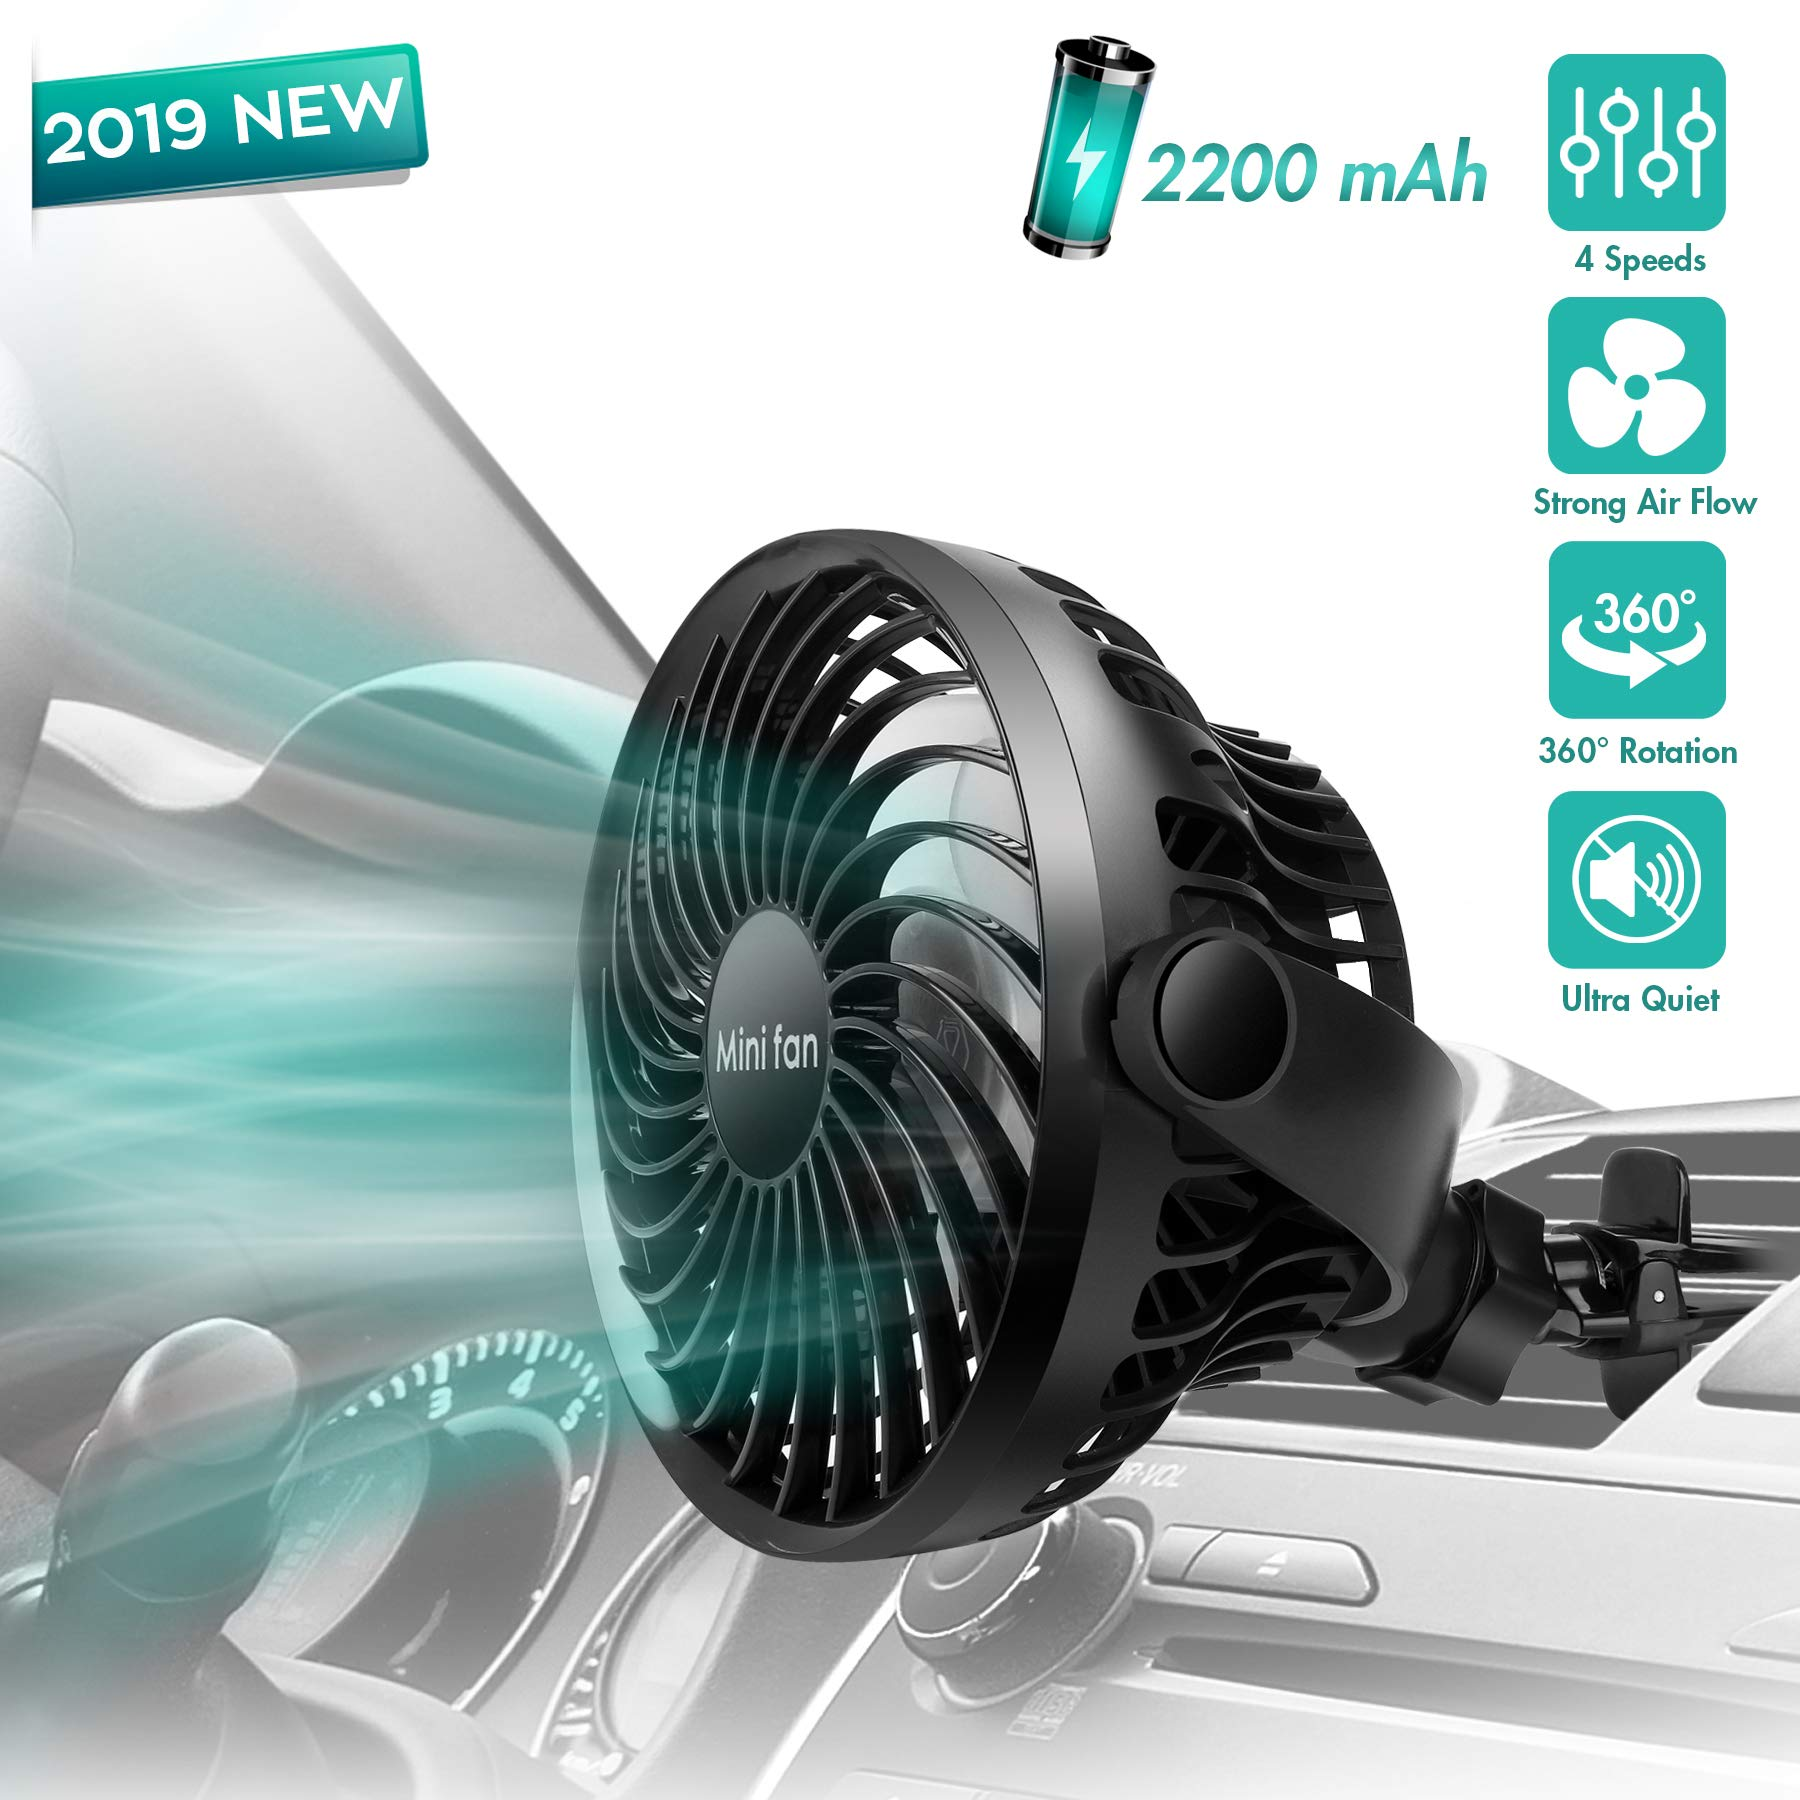 Car Fan, Car Air Vent Clip Fan, 2200 mAh Rechargerable Battery powered fan, Air Circulation Fan with High Airflow, Four Speeds, 360°Rotation, Must Have for Driver in Summer(Battery Included)